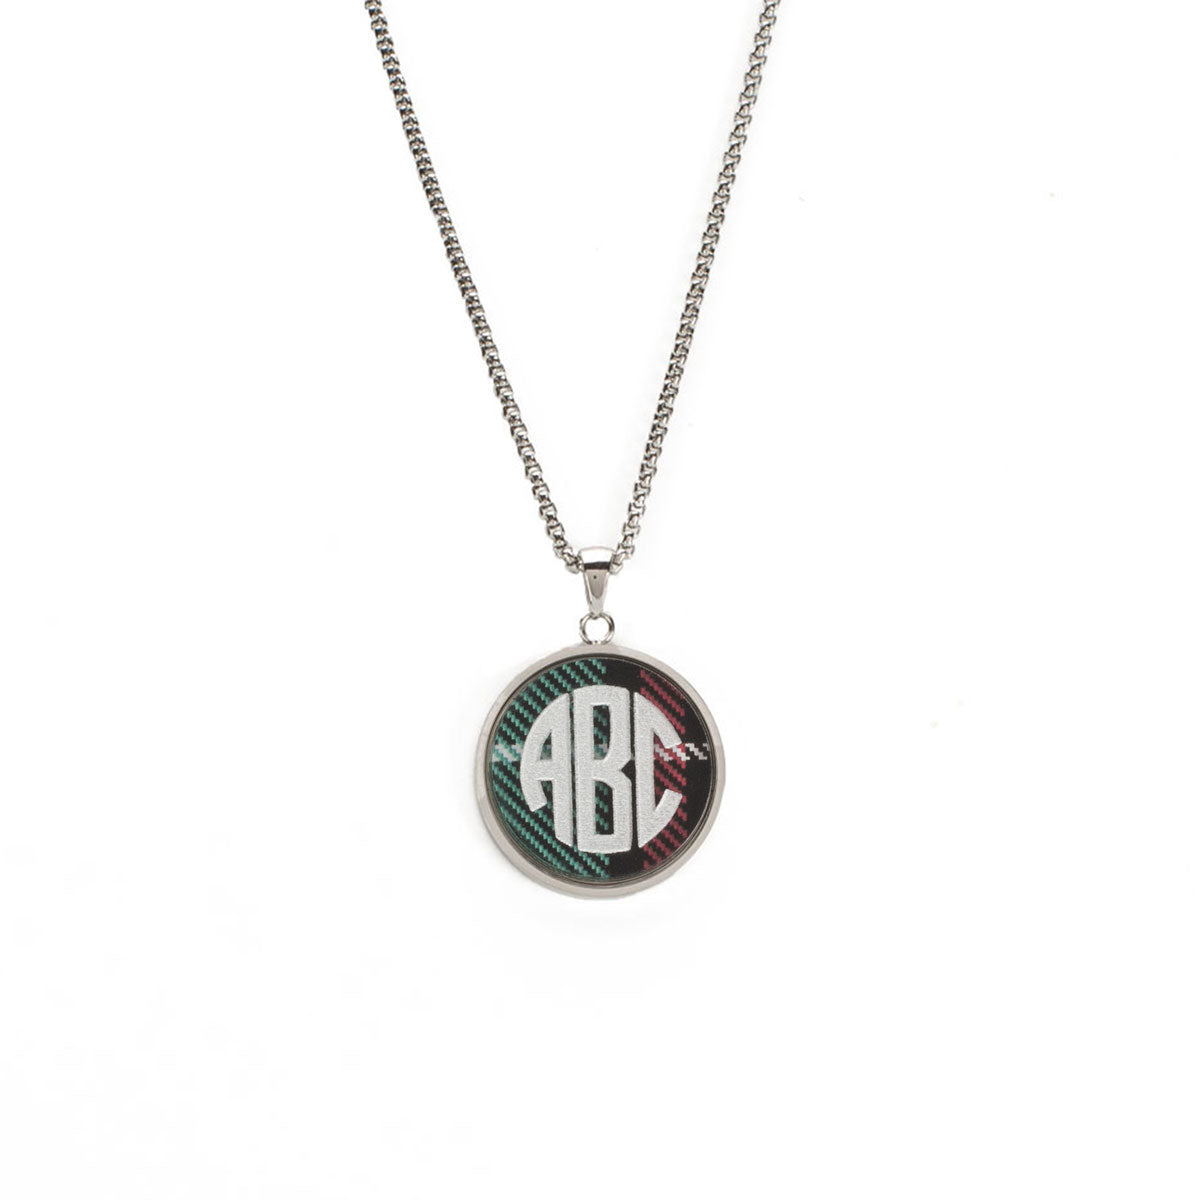 Jackie Necklace with Custom Triple Letter Traditional Monogram in Circle  Font - Silver